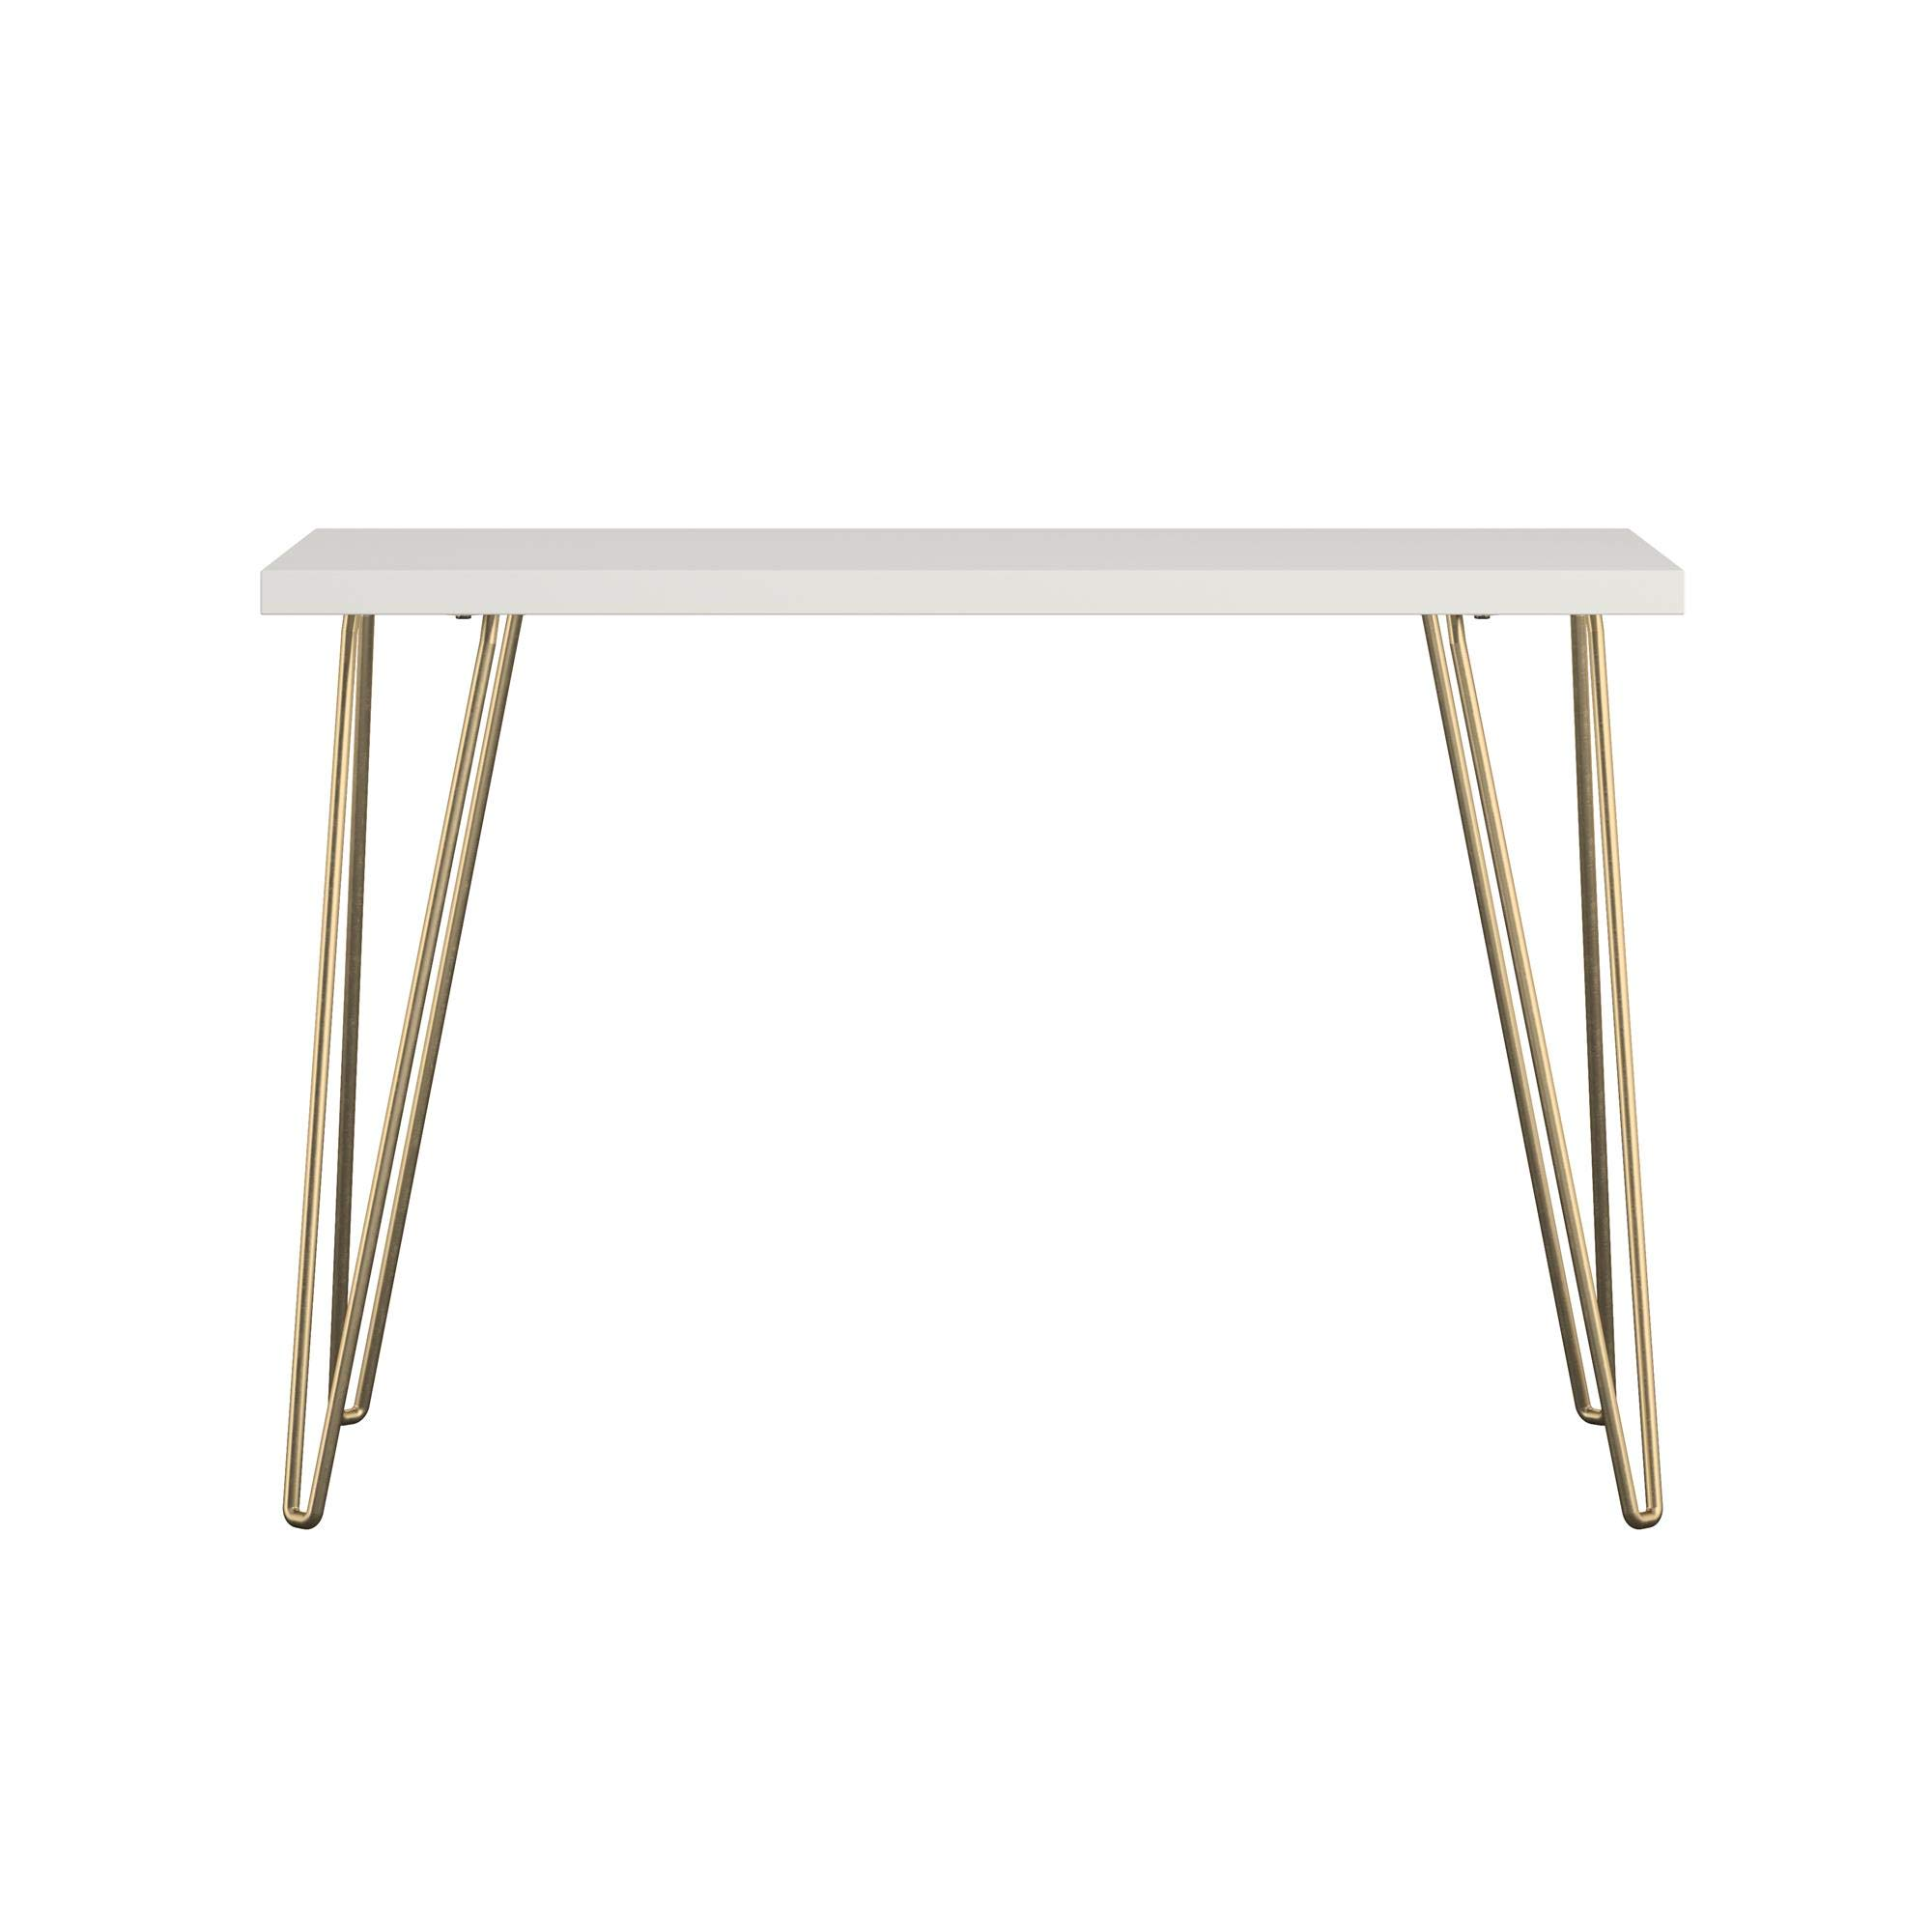 AmazonBasics Retro Hairpin Compact Computer Desk - Solid White with Matte Gold Legs by AmazonBasics (Image #3)